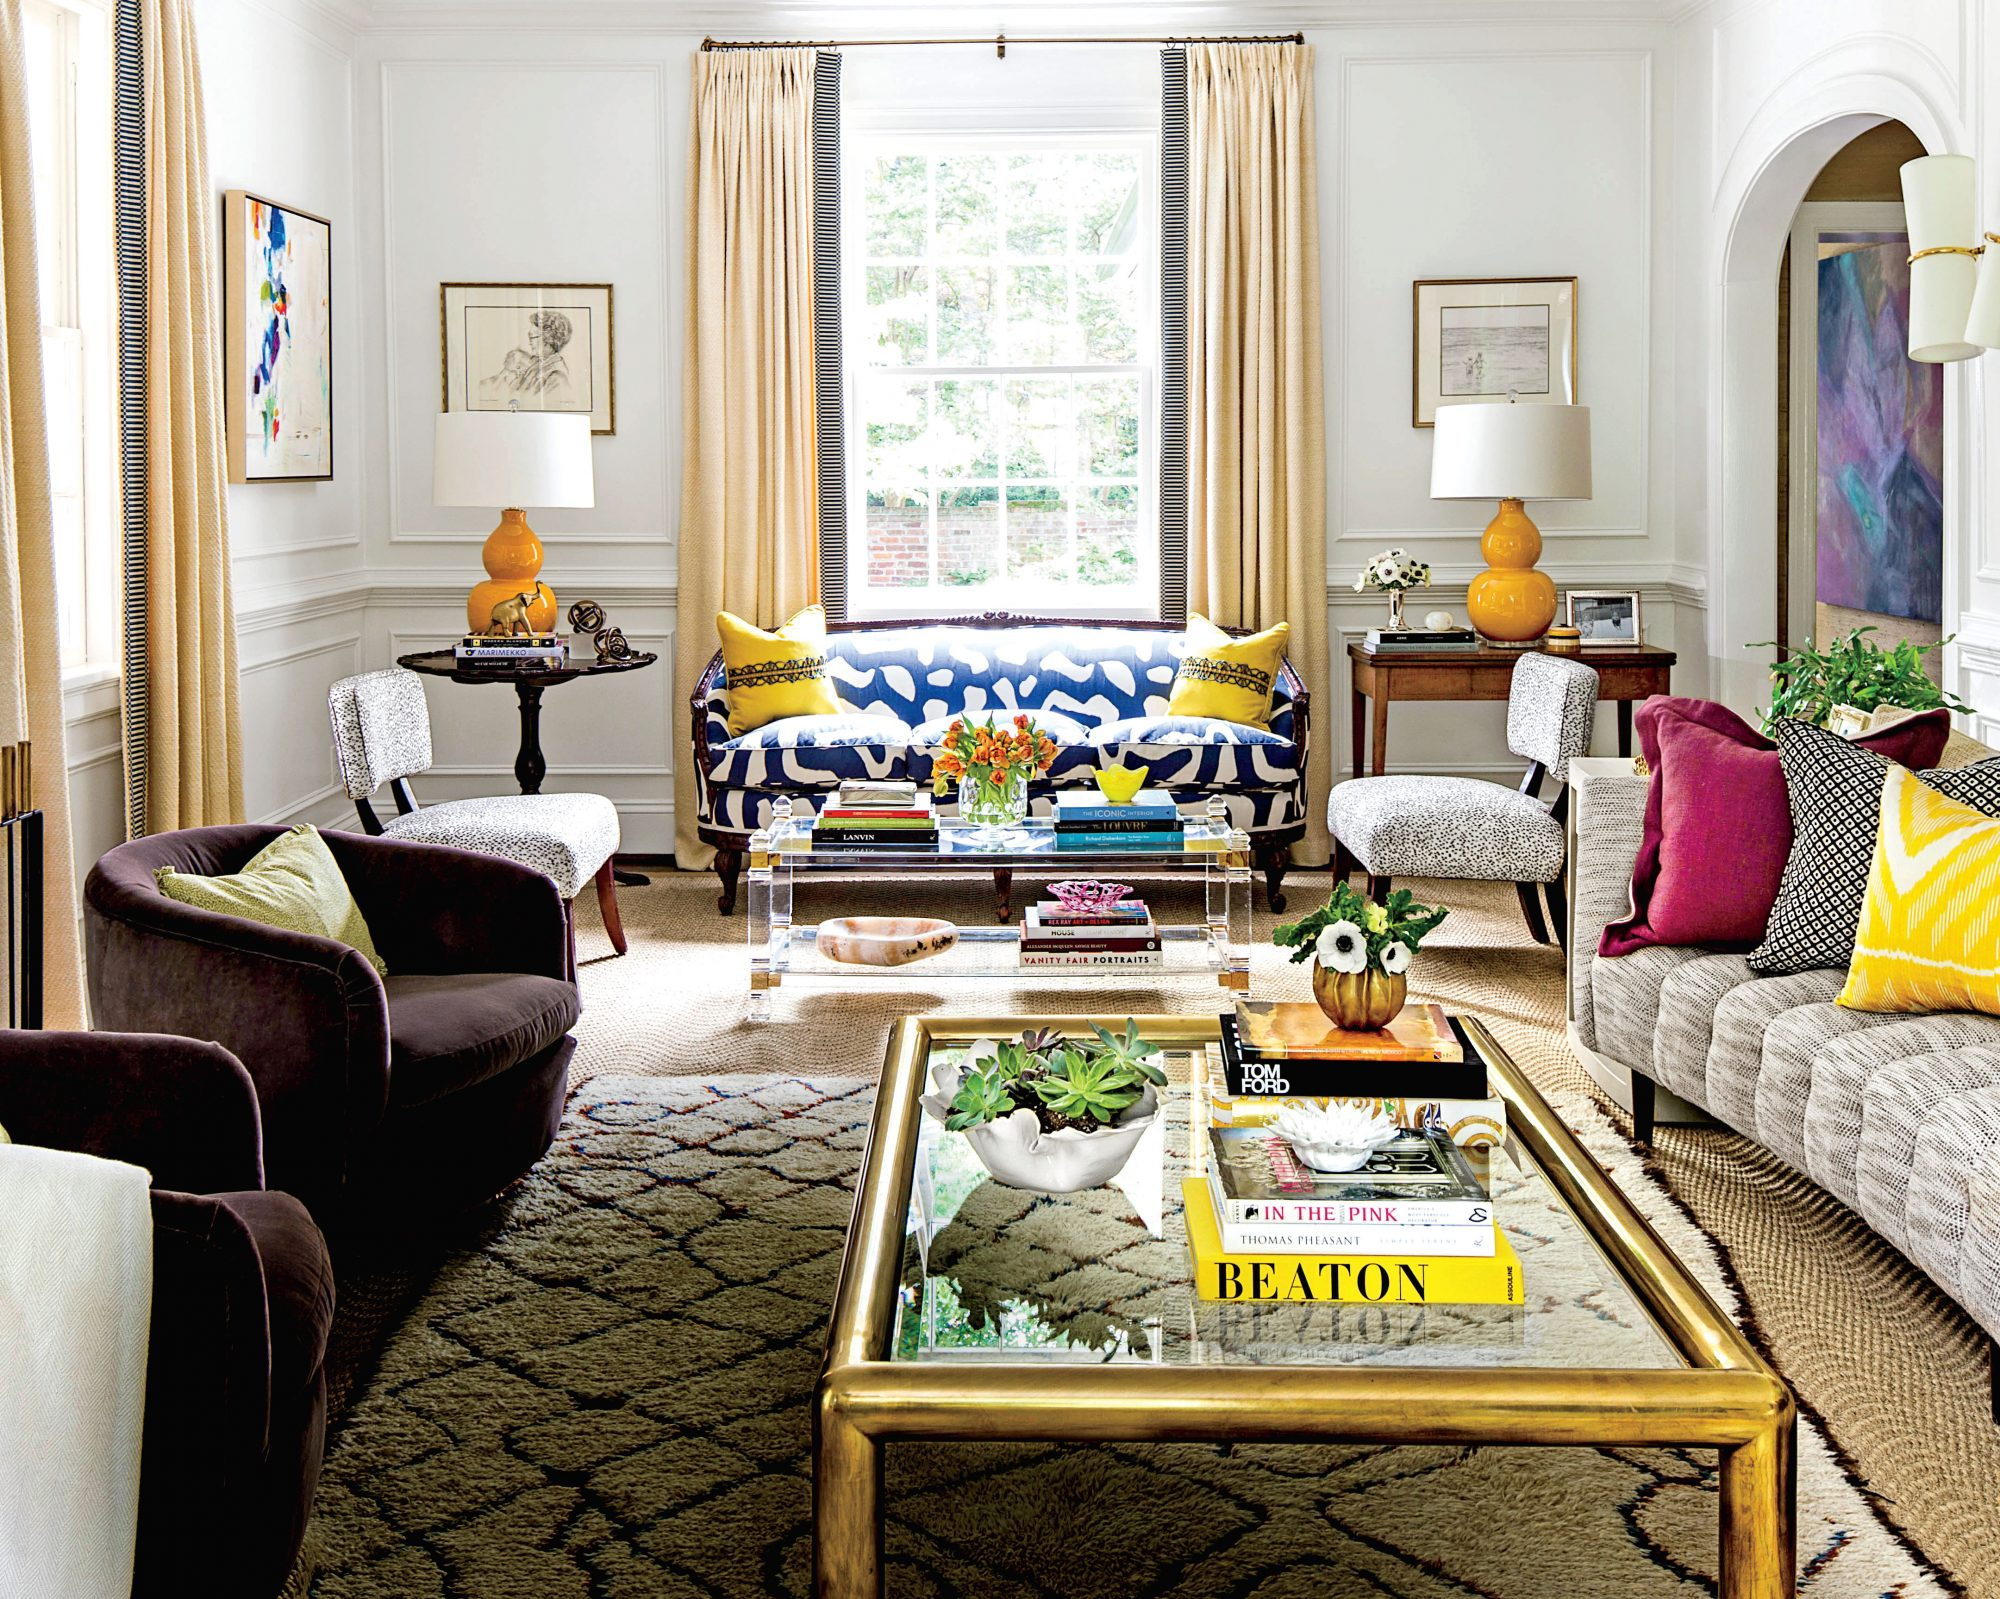 Small house furniture Cool Bold Patterns In Small Living Room Sunset Magazine Our Best Small Space Decorating Tricks You Should Steal